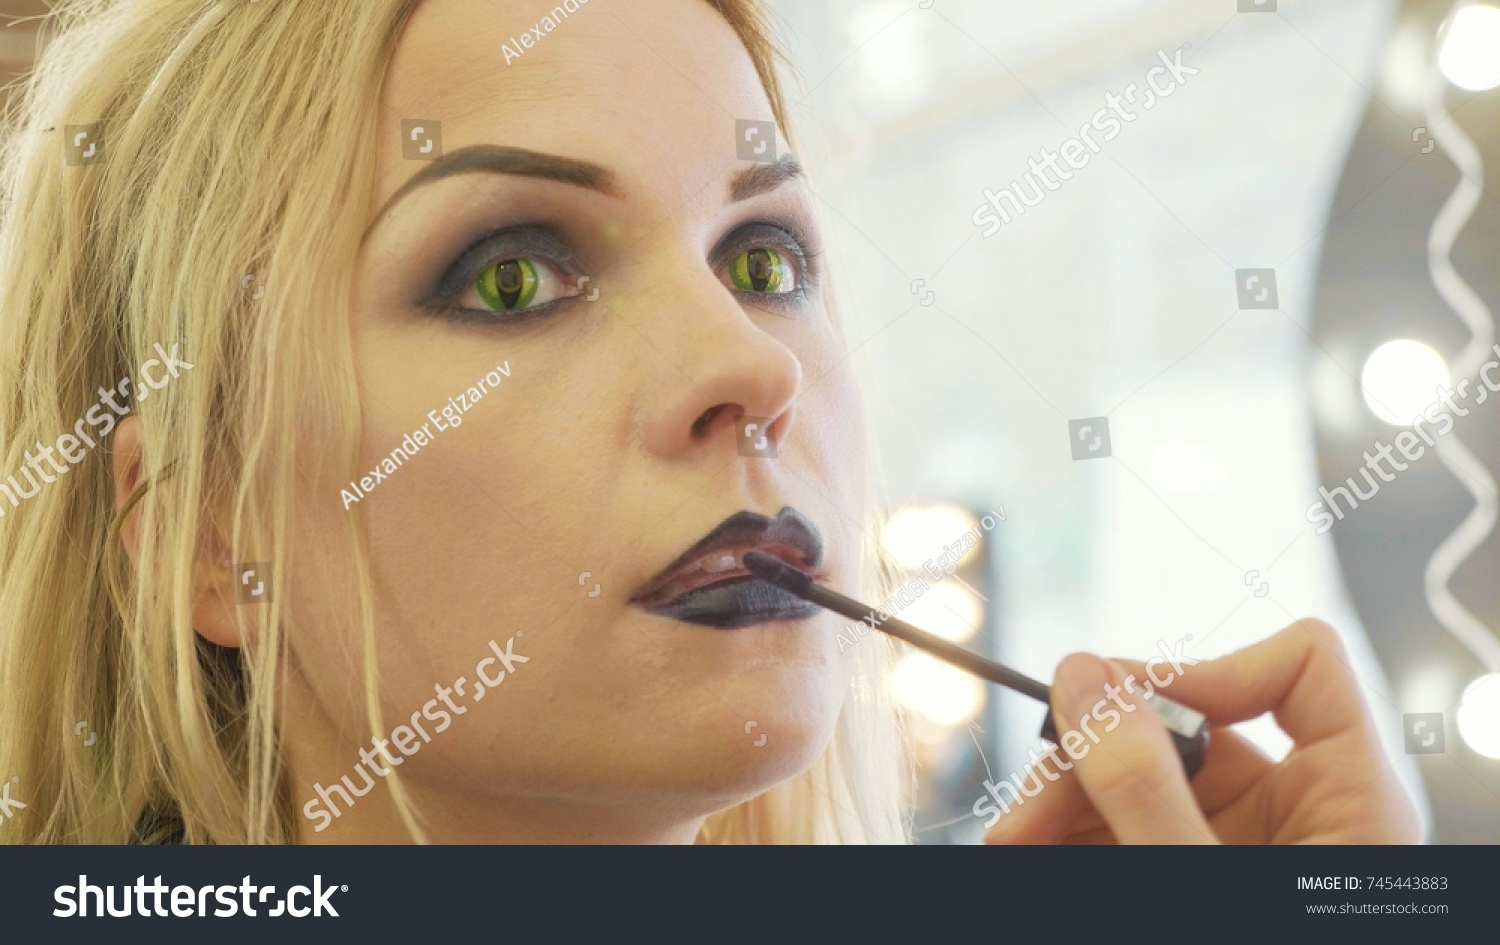 process applying halloween makeup on face stock photo (edit now